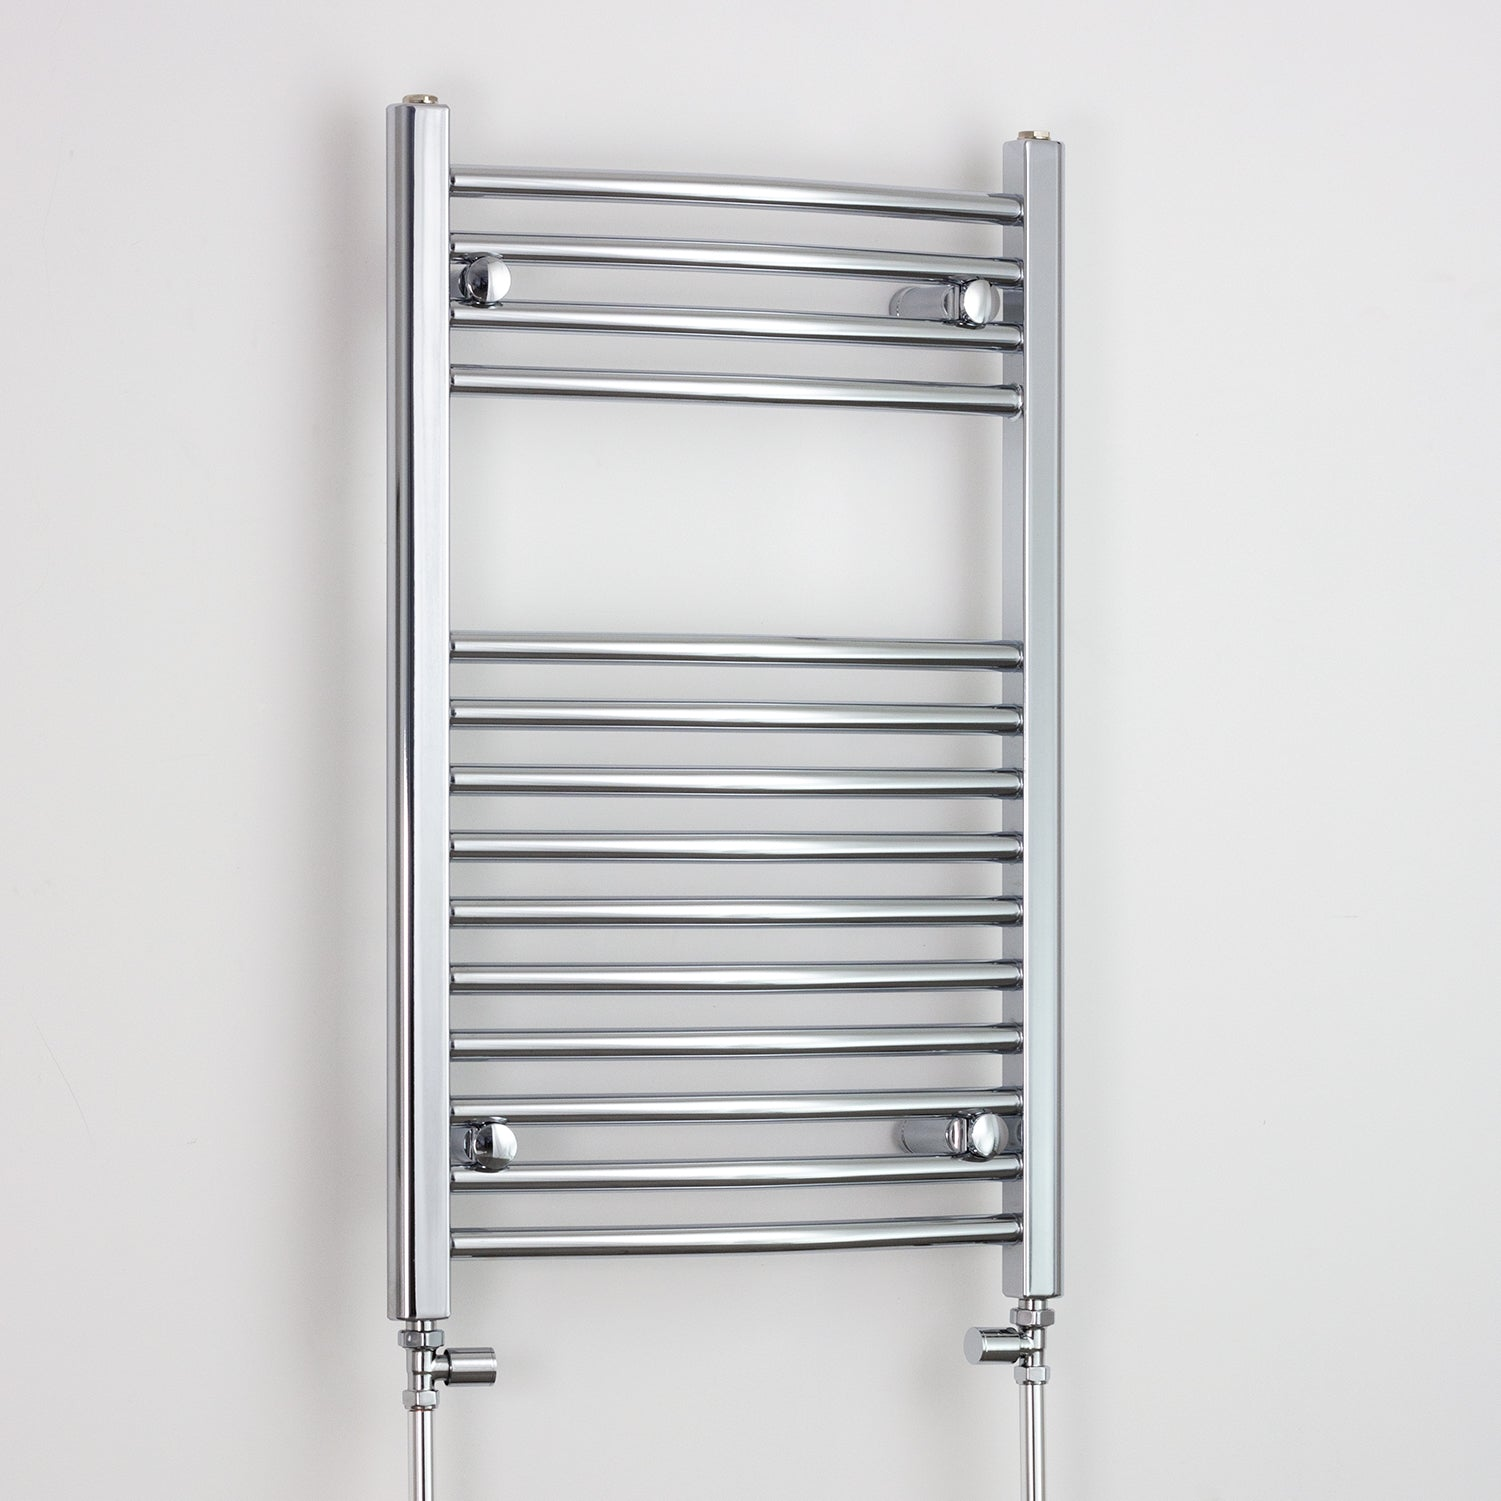 600mm Wide 800mm High Chrome Towel Rail Radiator With Straight Valve